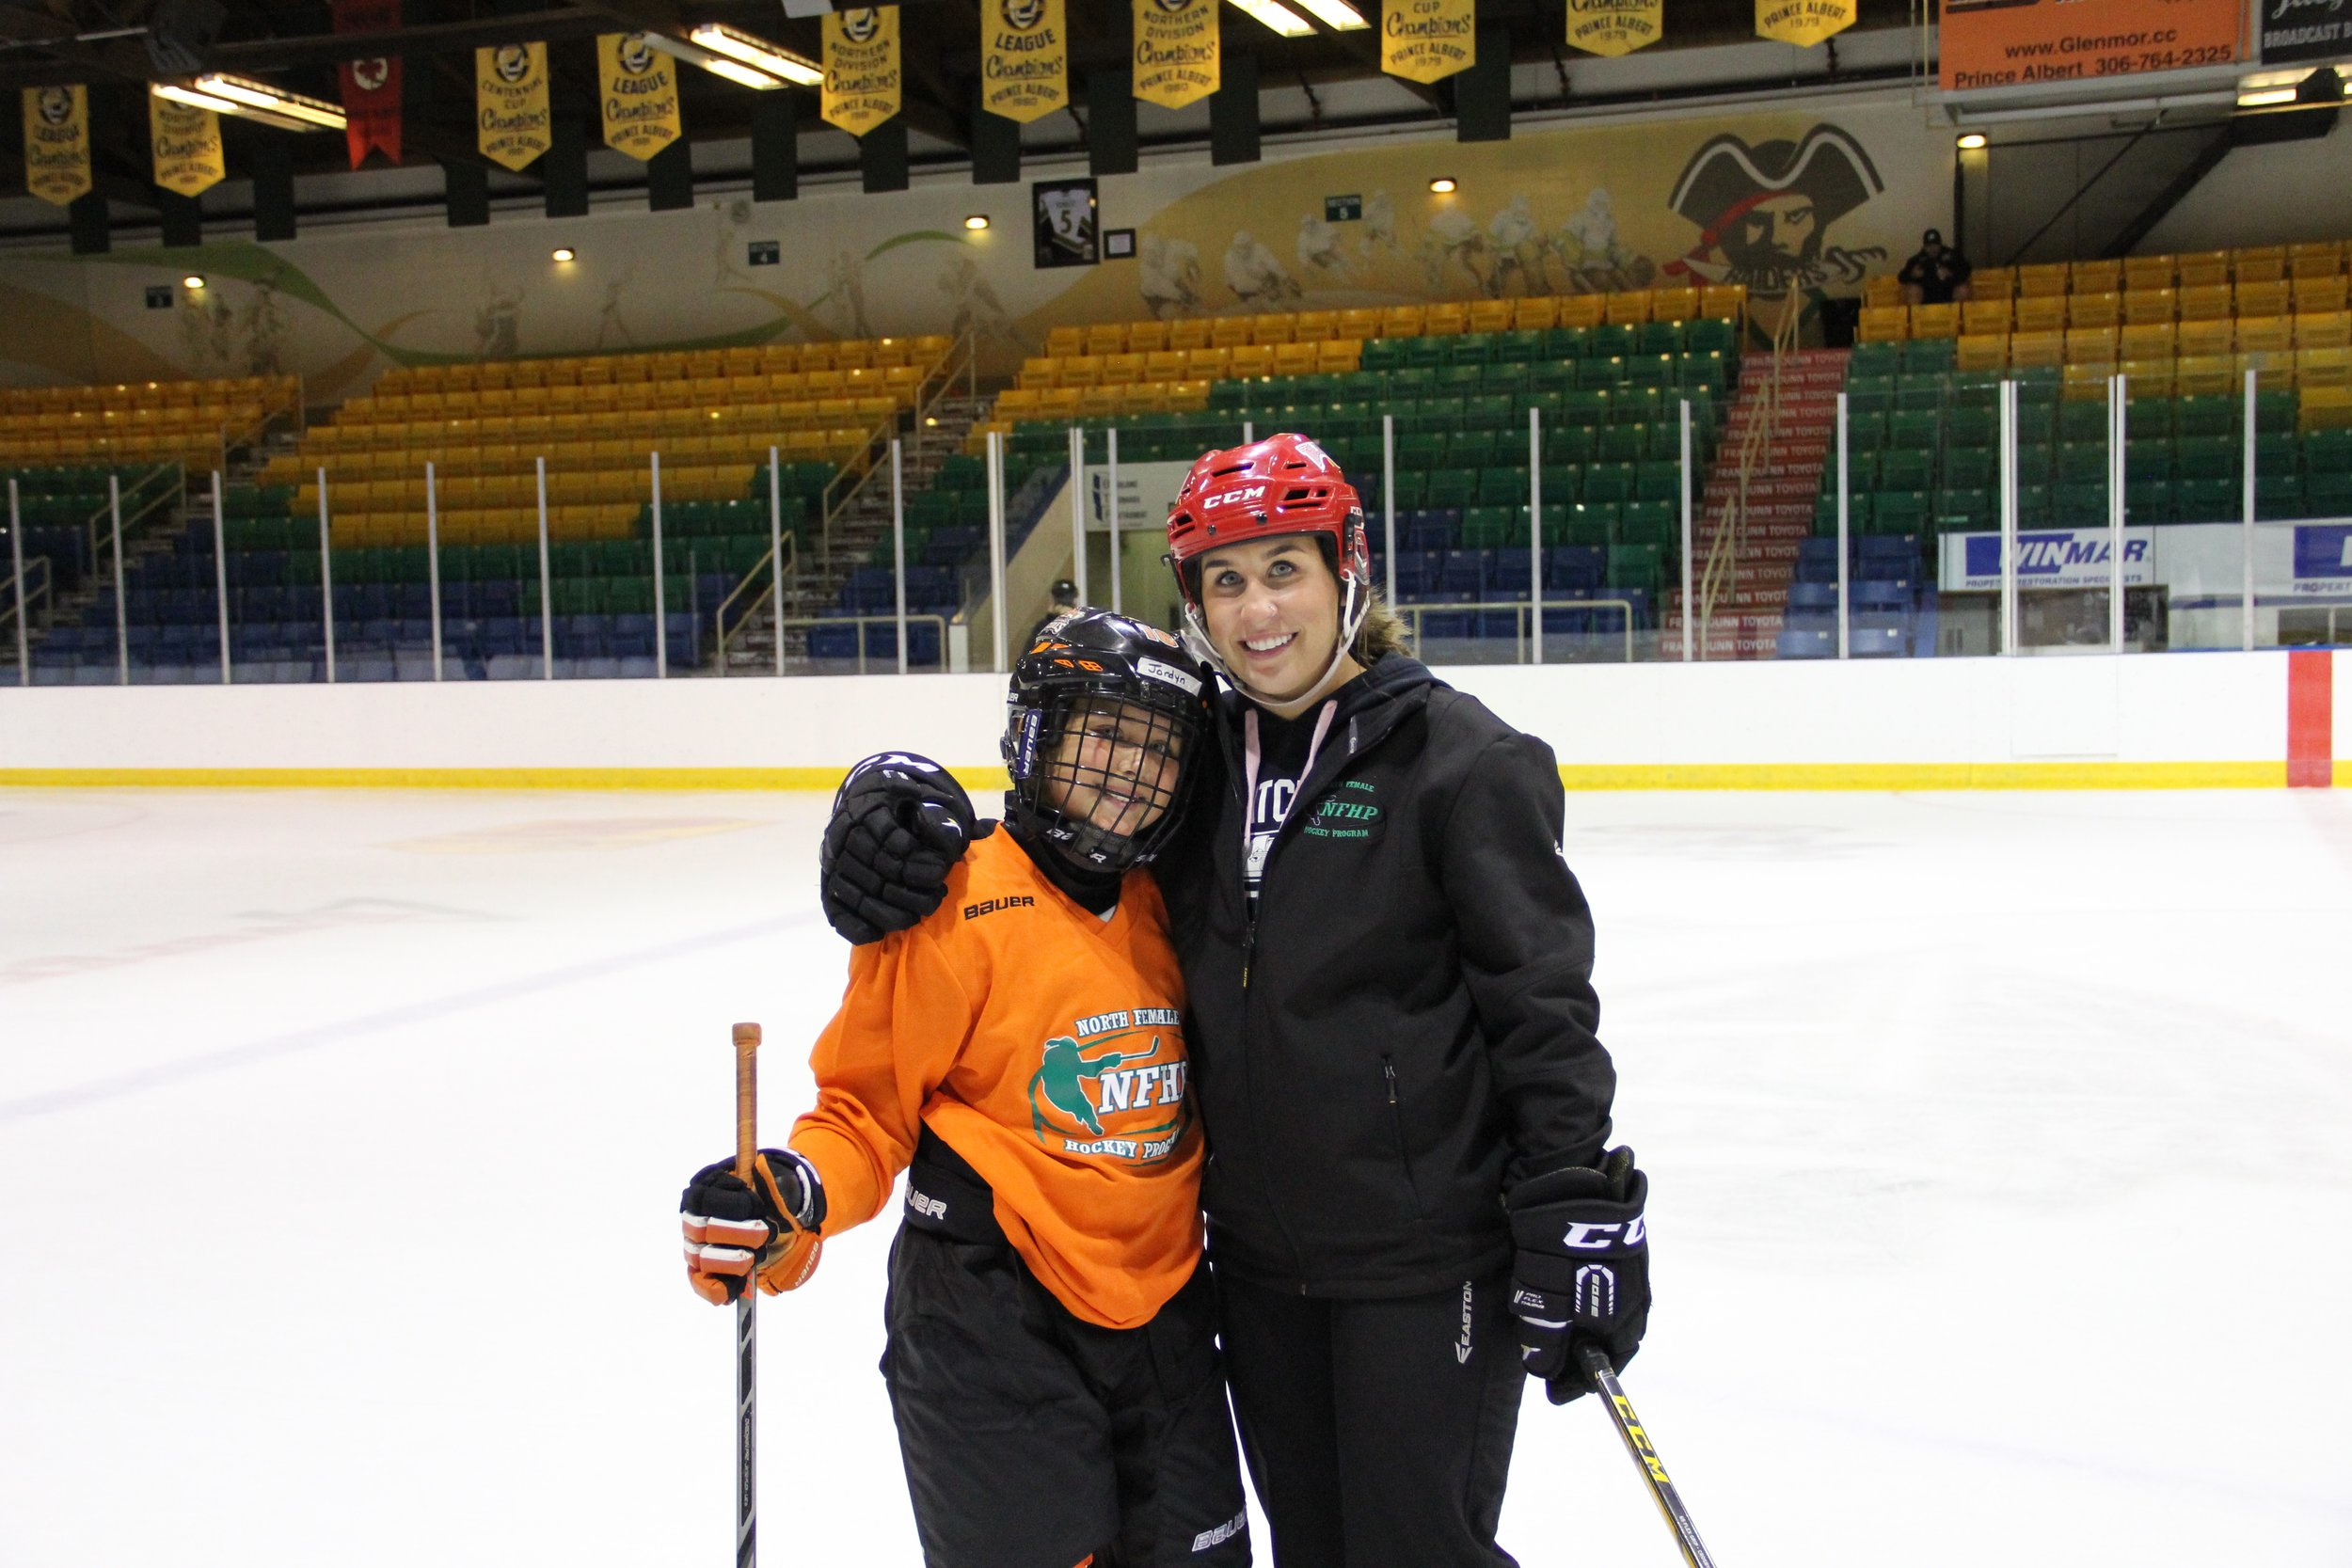 Coach & player posing on the ice.